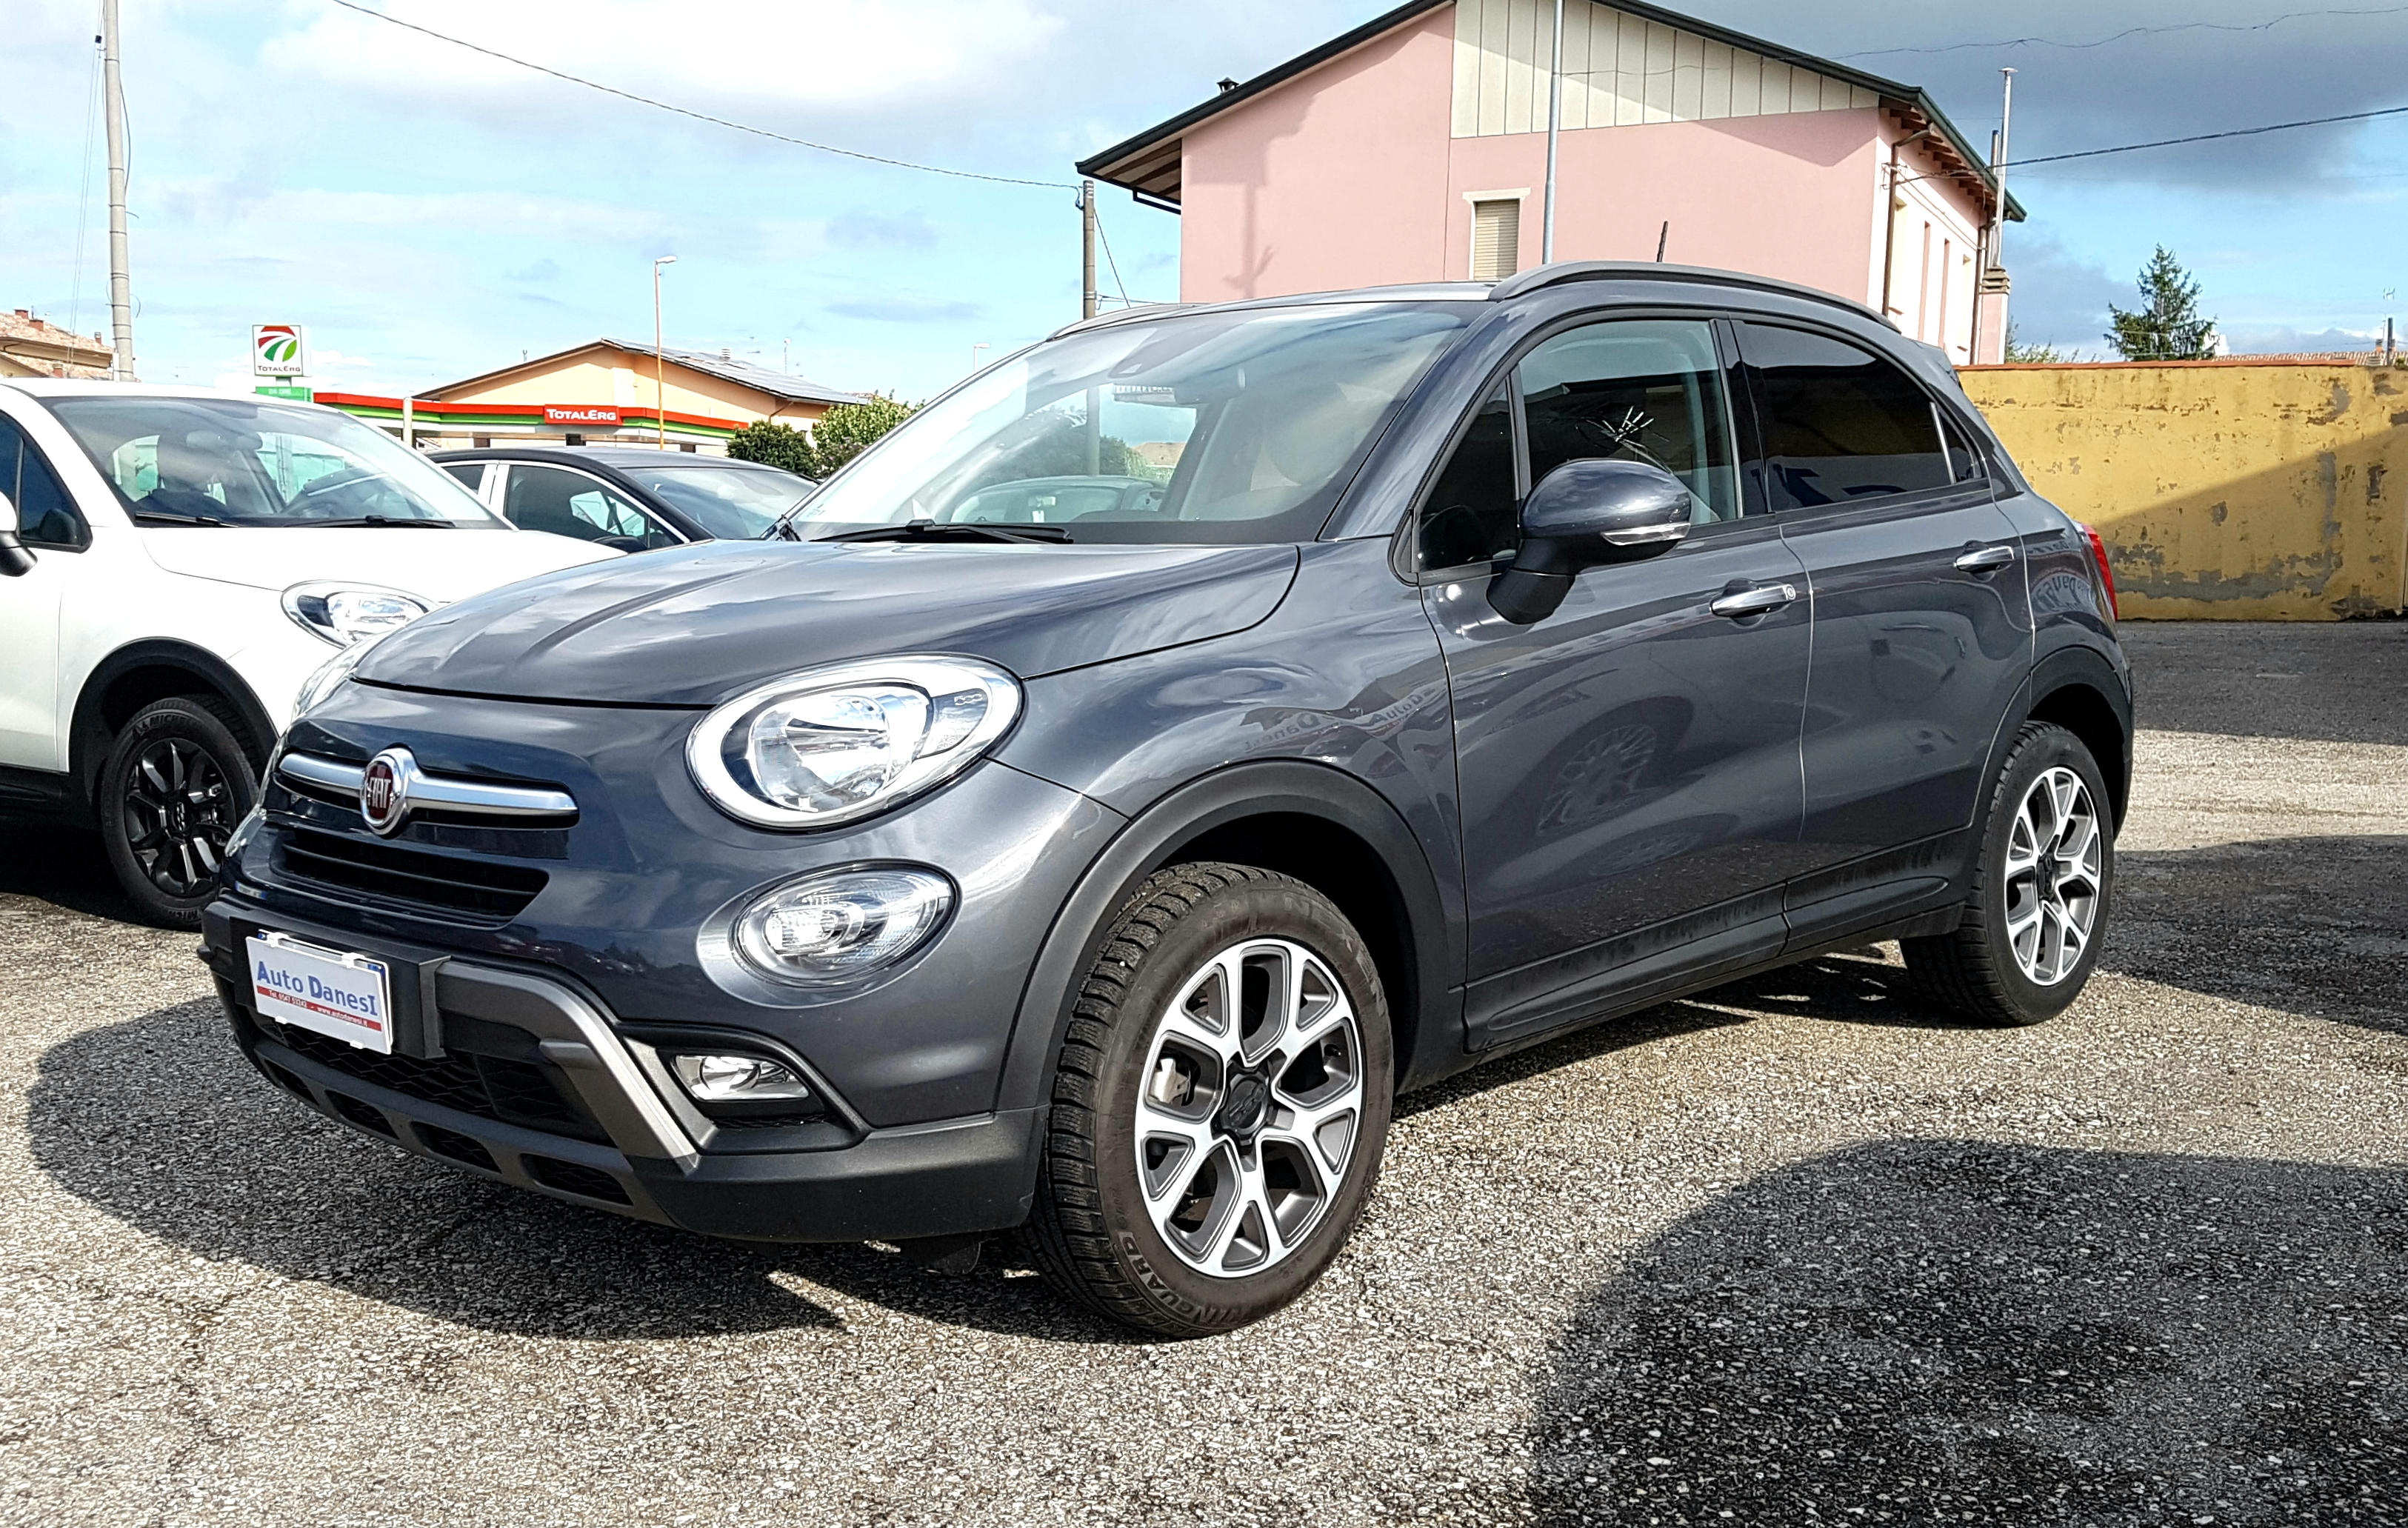 fiat 500x off road look 1 6 mjt 120cv 4x2 cross autodanesi vendita auto nuove e usate longiano. Black Bedroom Furniture Sets. Home Design Ideas